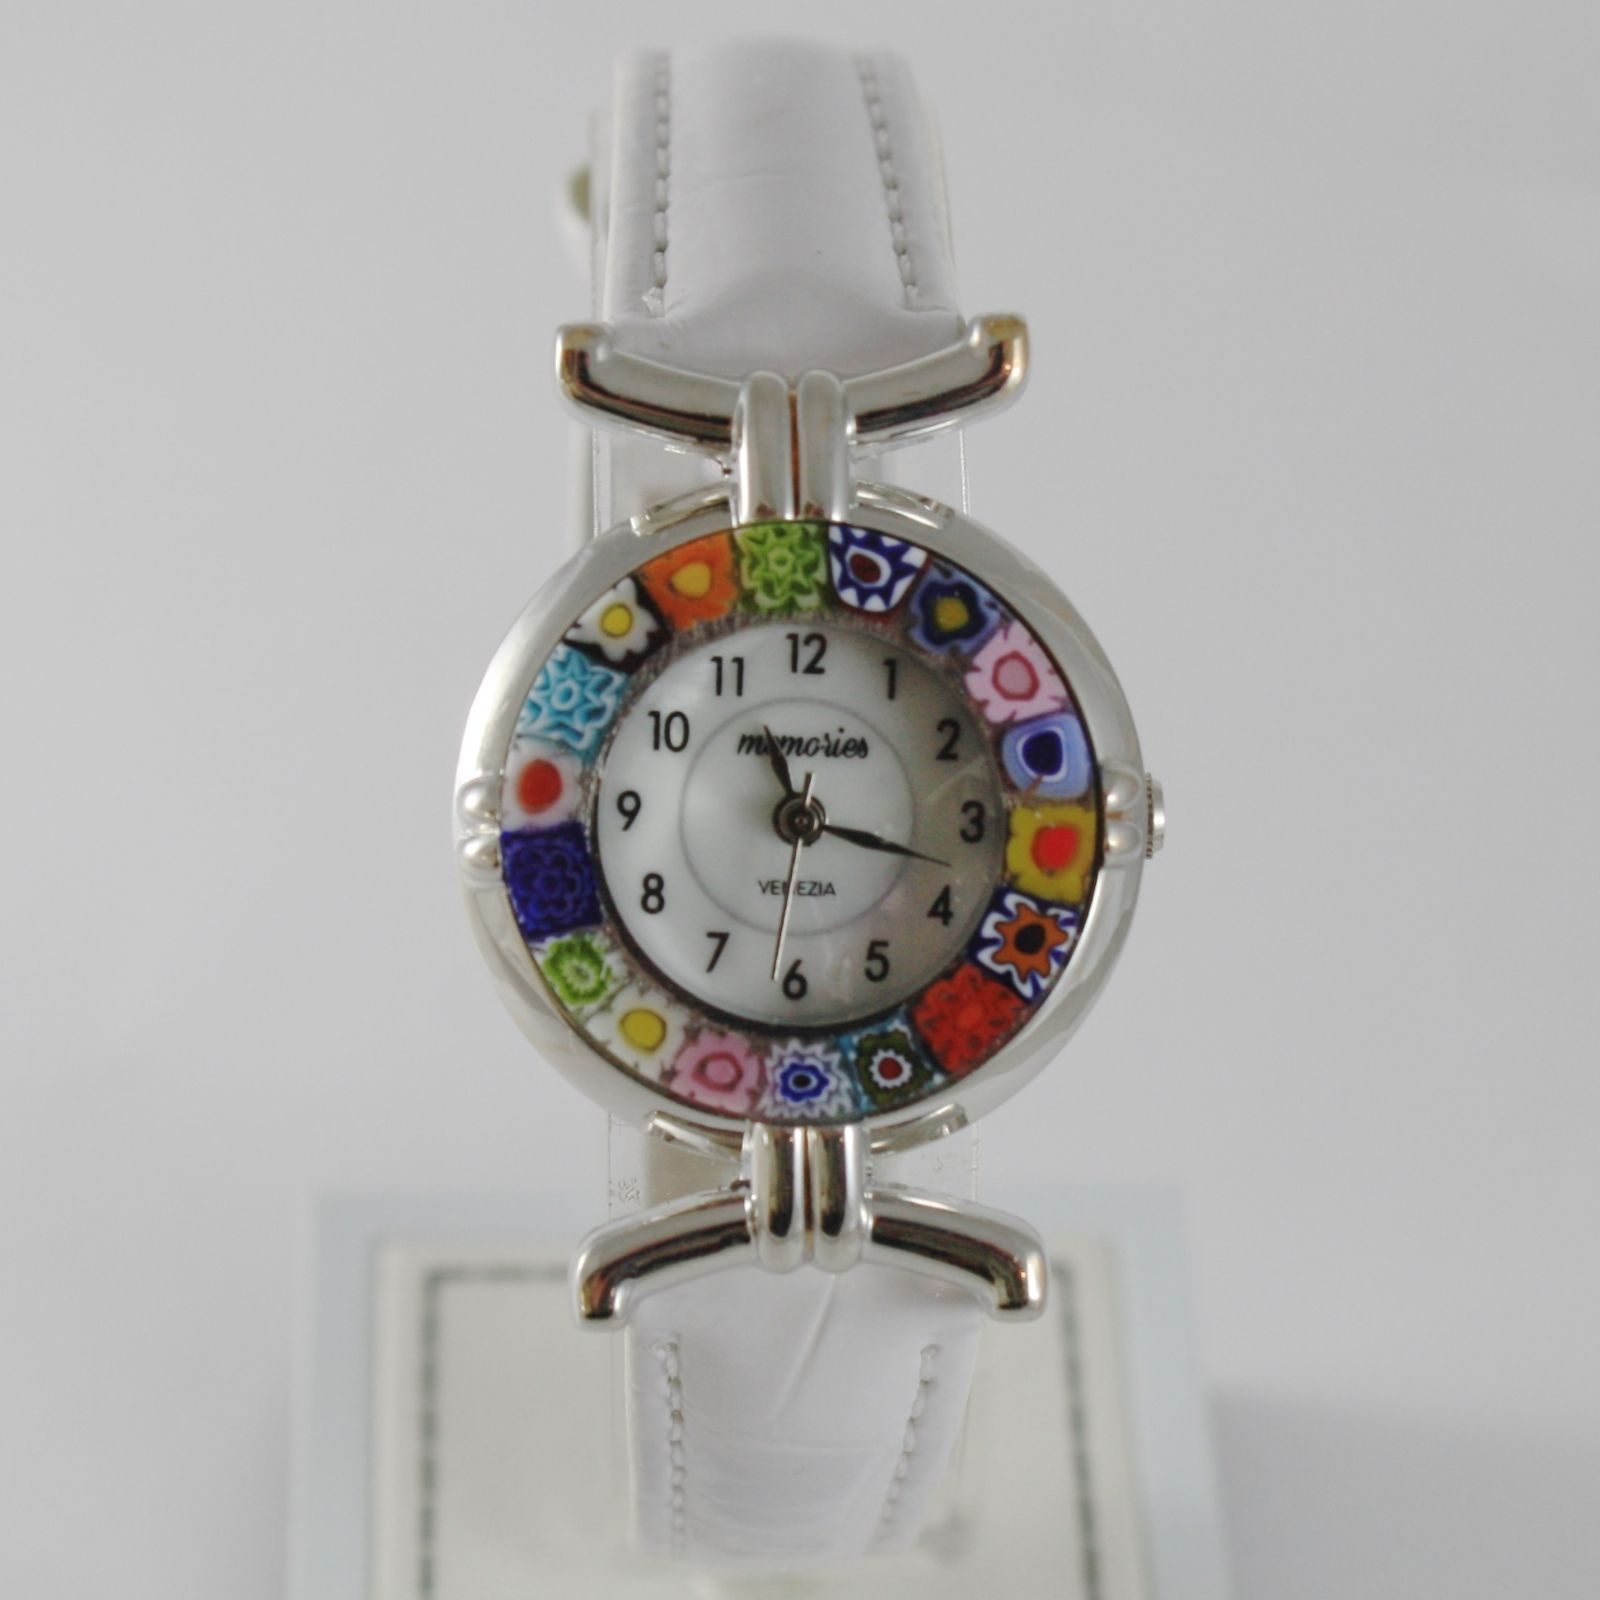 ANTICA MURRINA VENEZIA QUARTZ WATCH 27 MM, WHITE, MURANO FLOWER GLASS